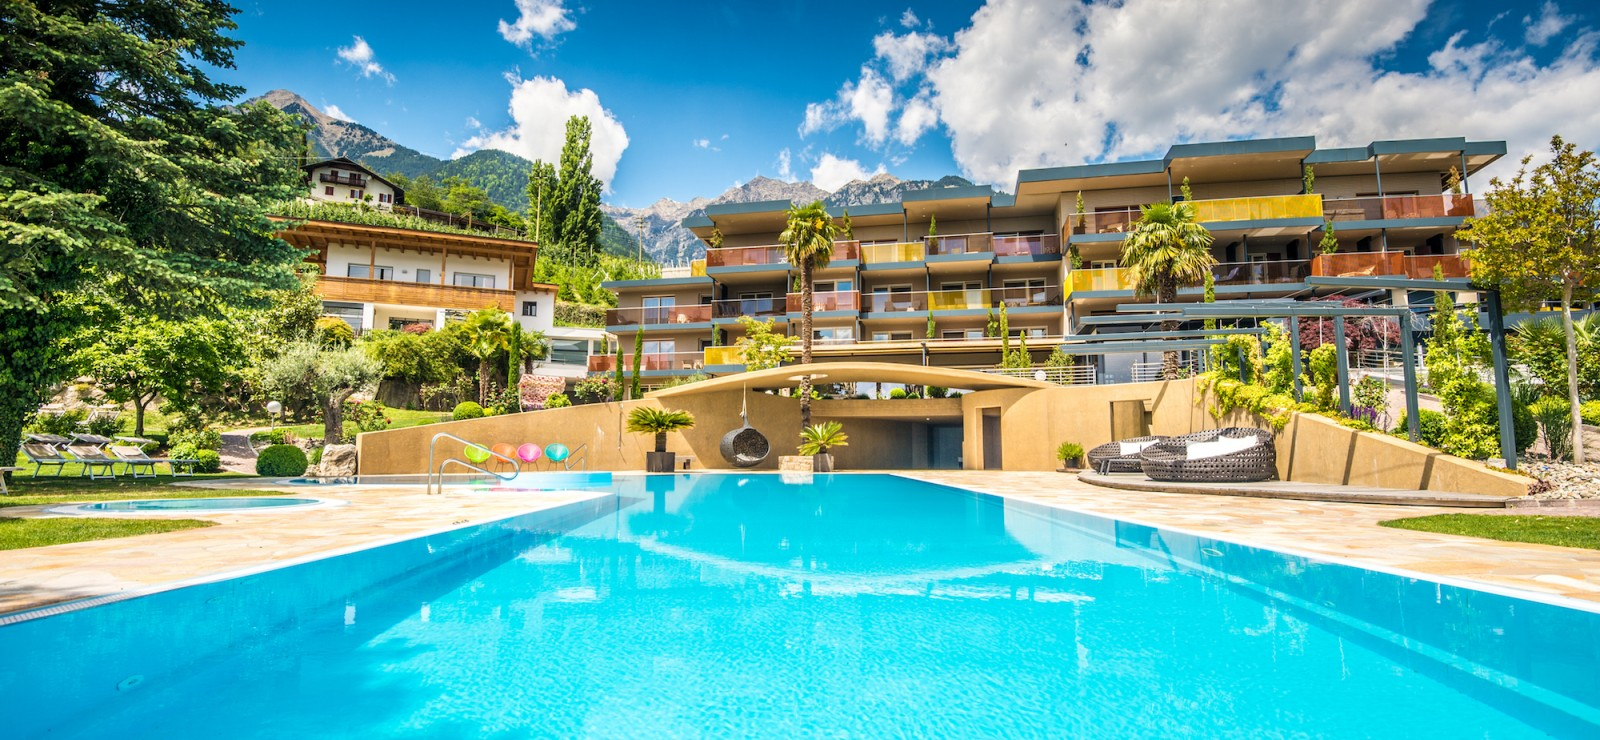 Hotel Johannis - Feel Good Resort Bilder | Bild 1